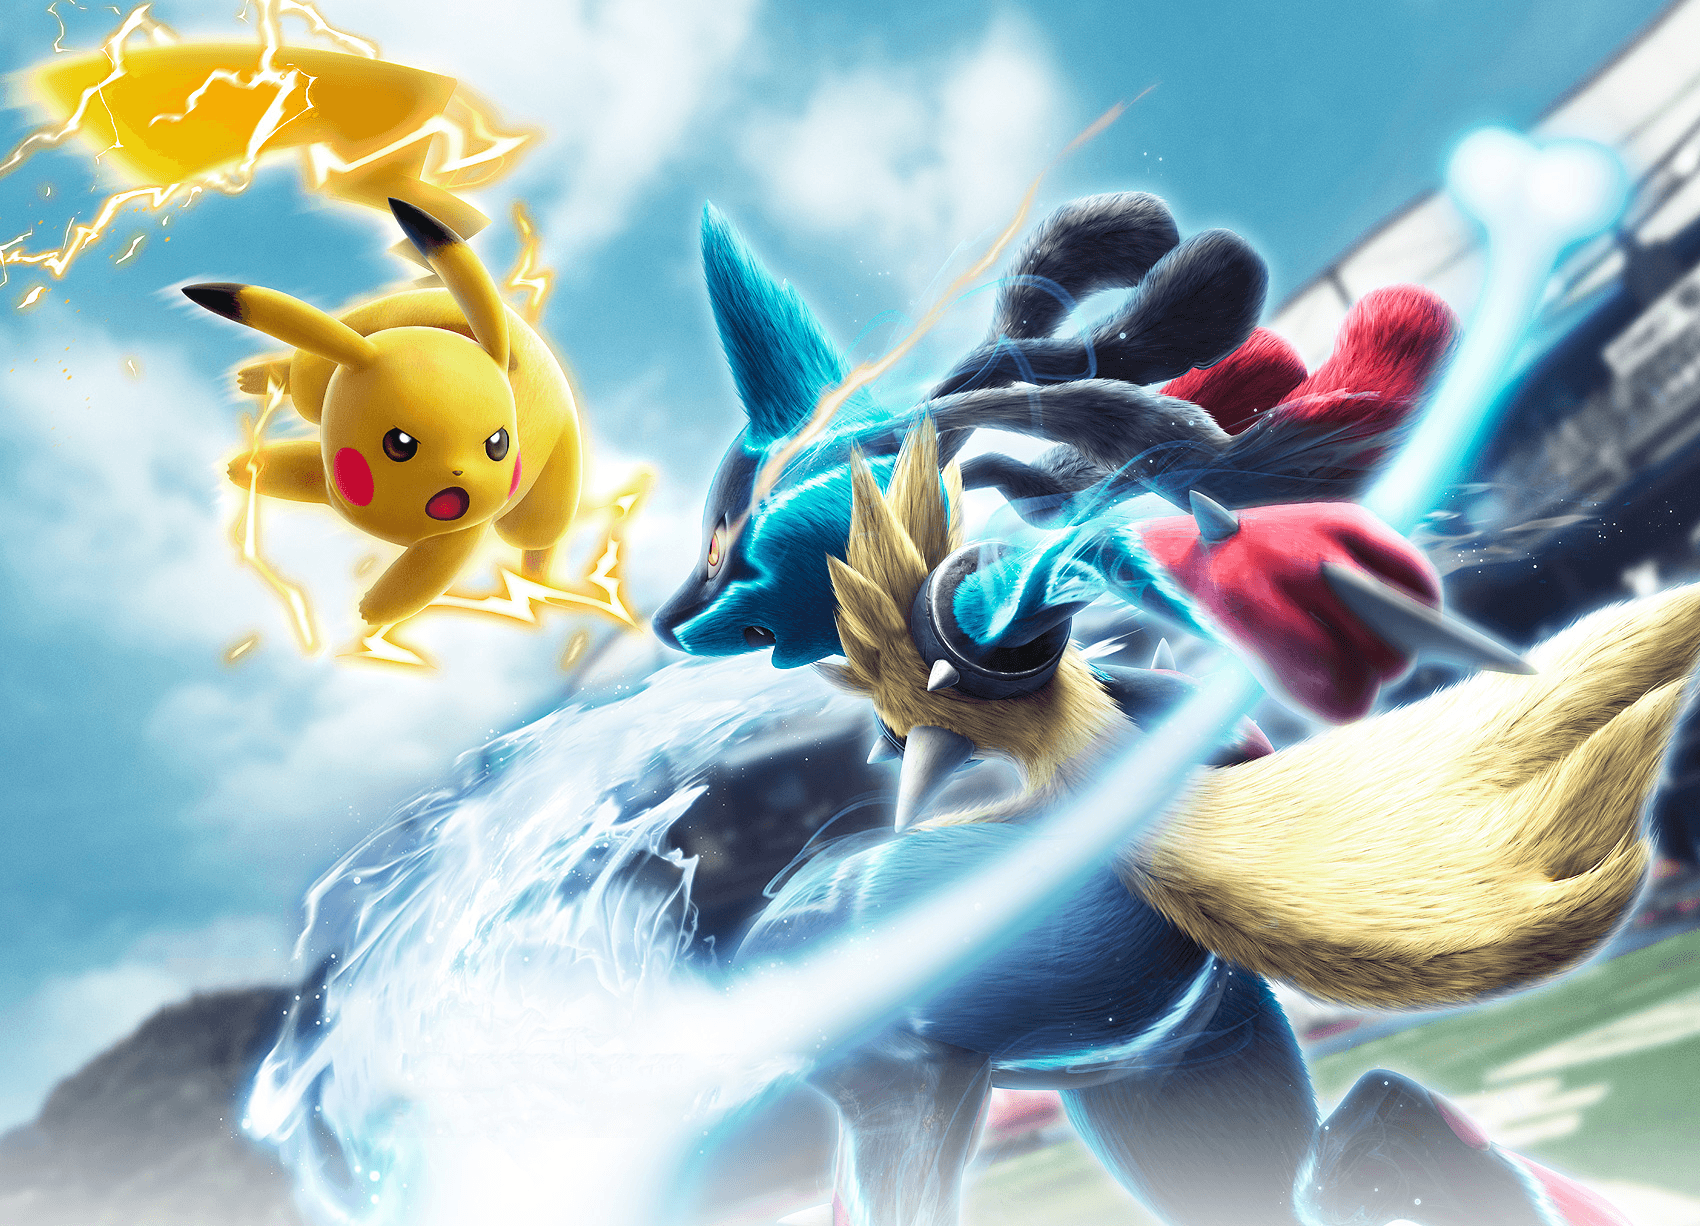 Pikachu Fighting Wallpapers Top Free Pikachu Fighting Backgrounds Wallpaperaccess